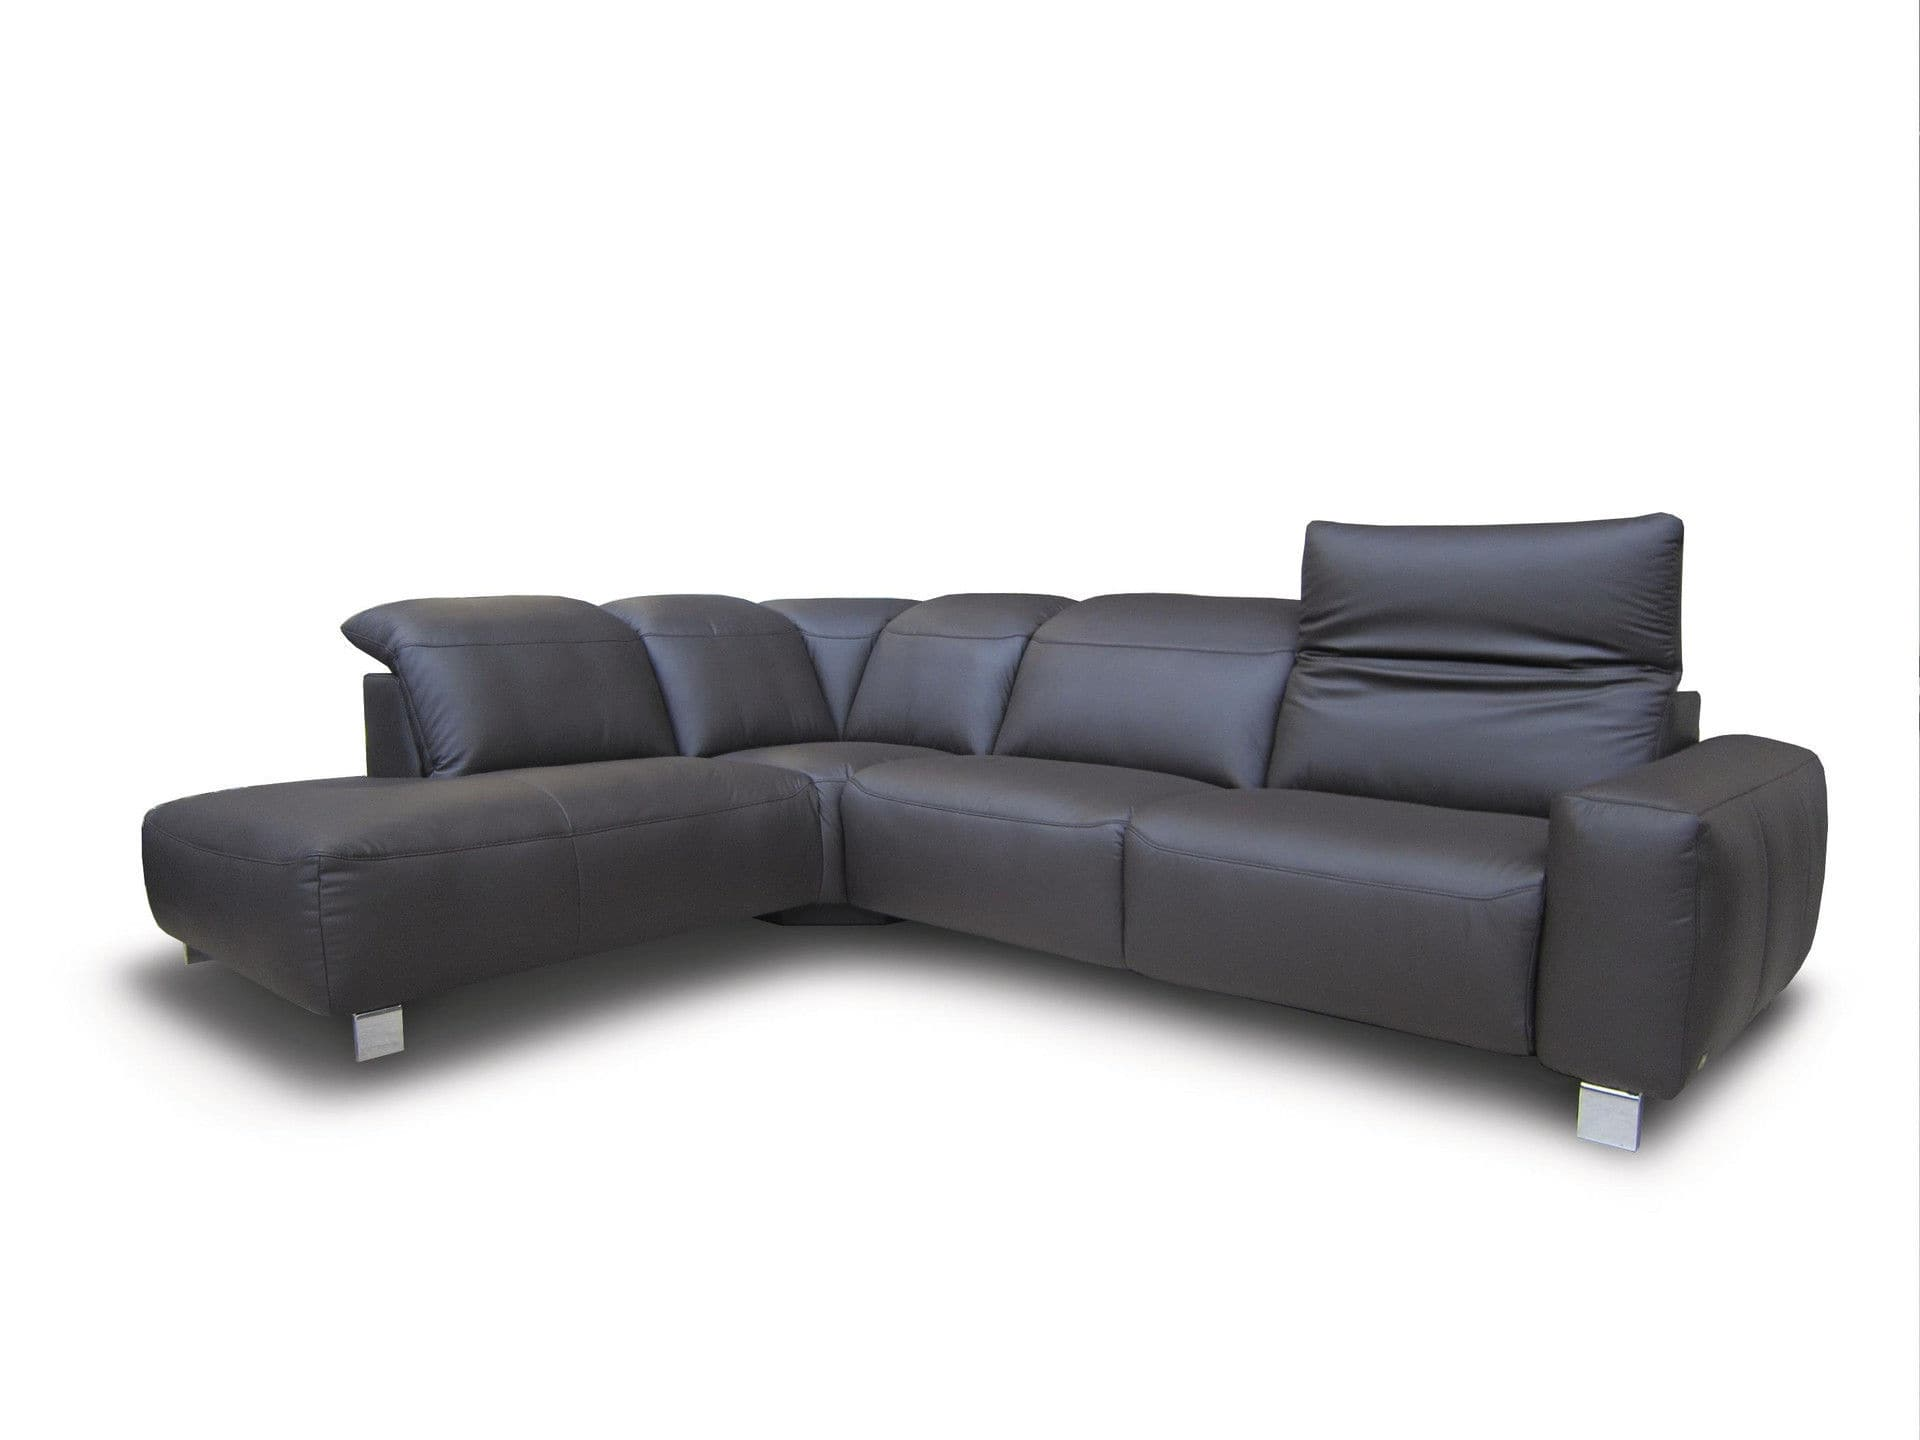 Musterring Kiana Couchtisch Musterring Sofa Leather Sectional Sofa